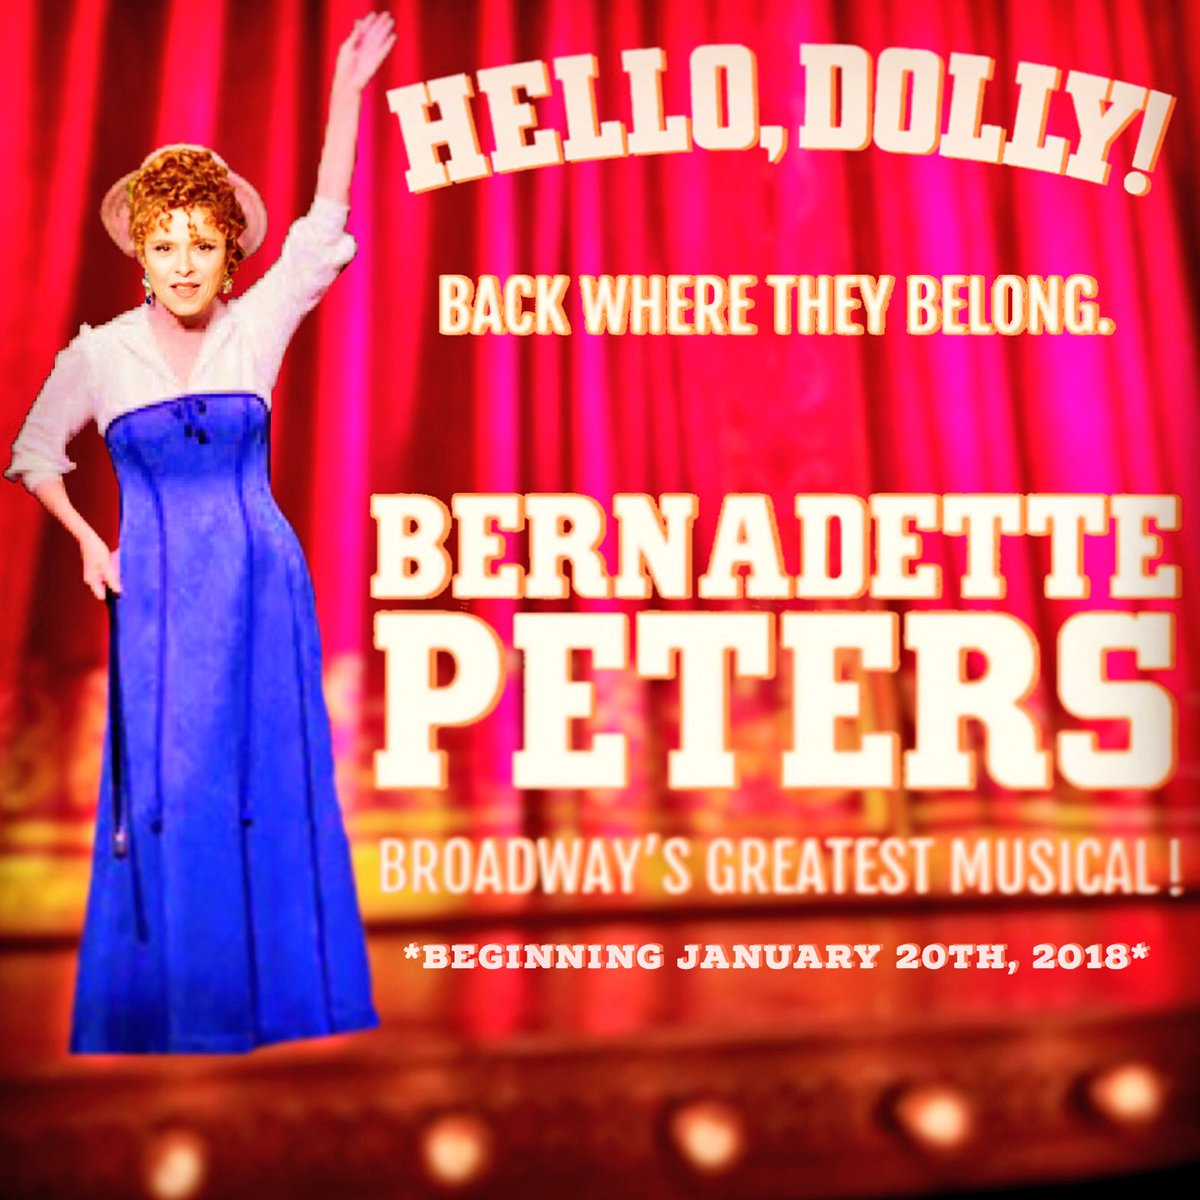 Official Bernadette Peters in Hello, Dolly! performances thread